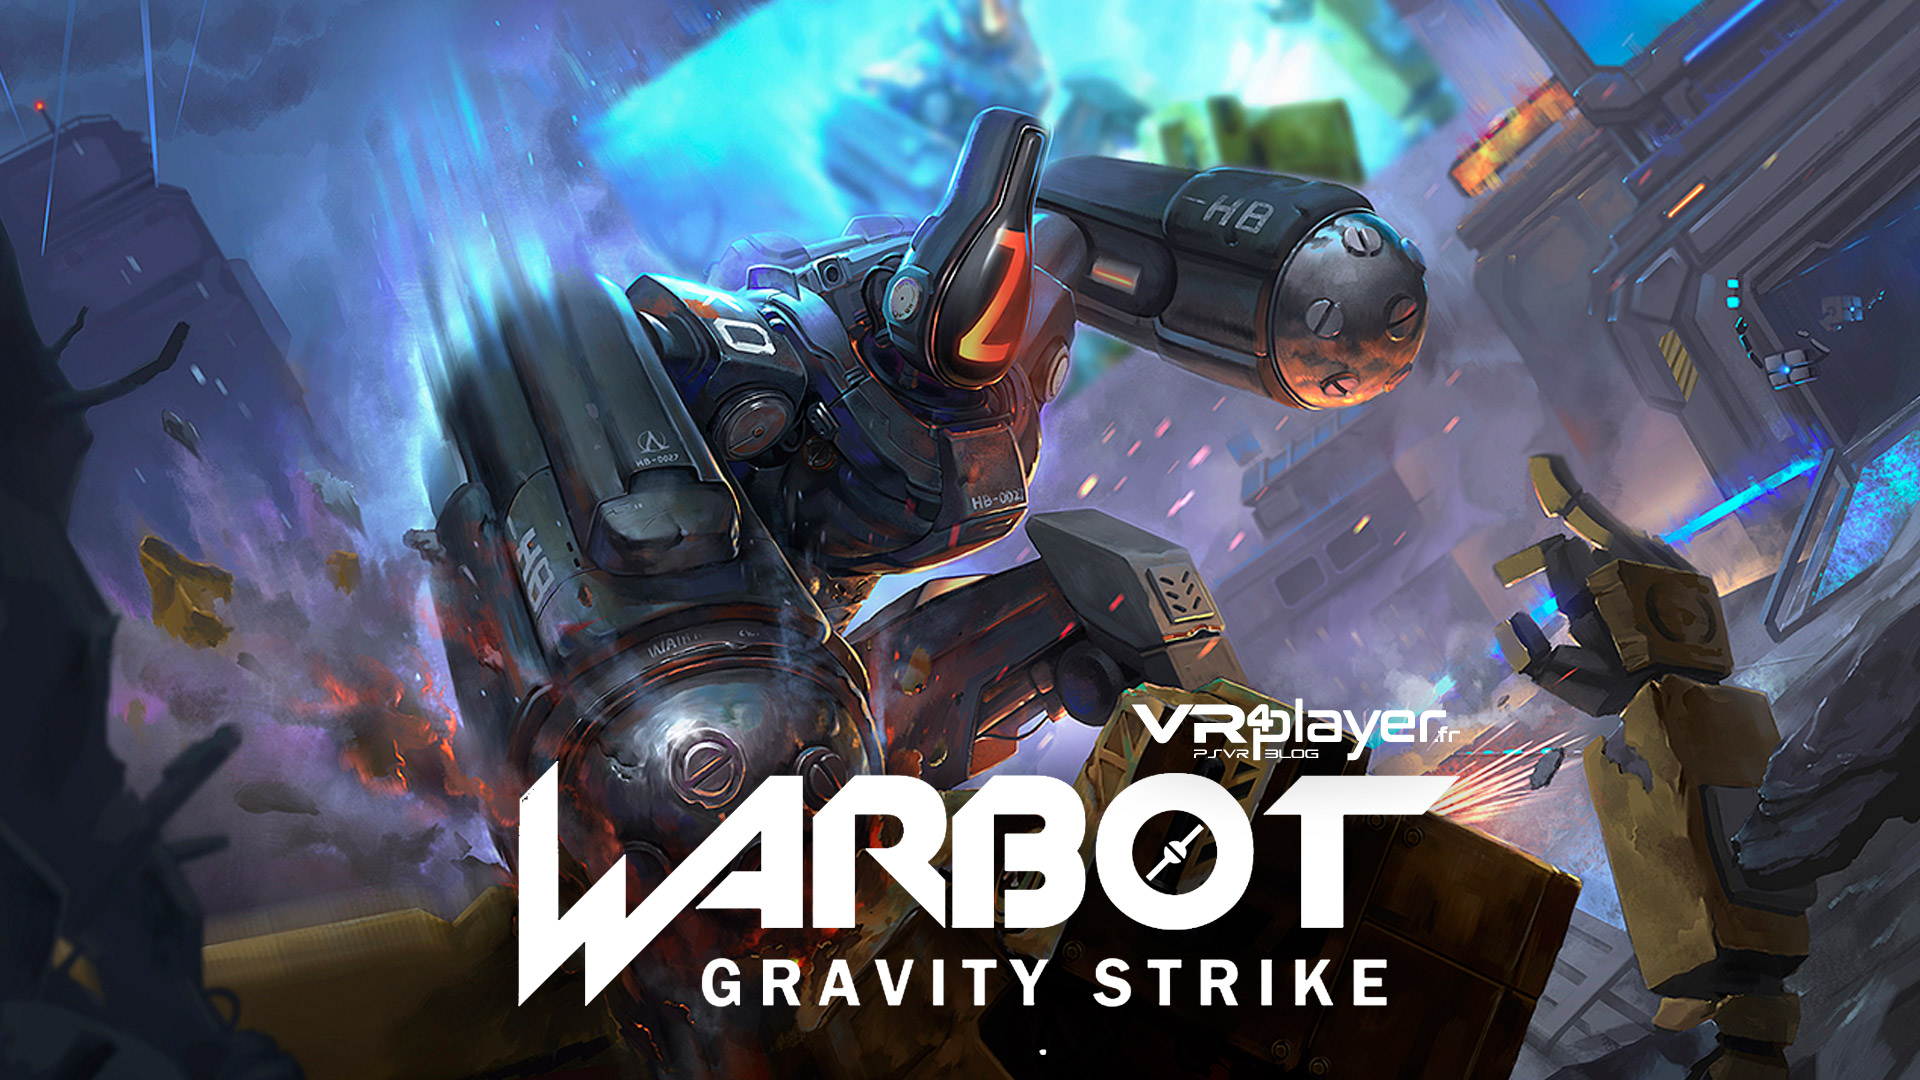 WarBot Gravity Strike PSVR PlayStation VR VR4Player